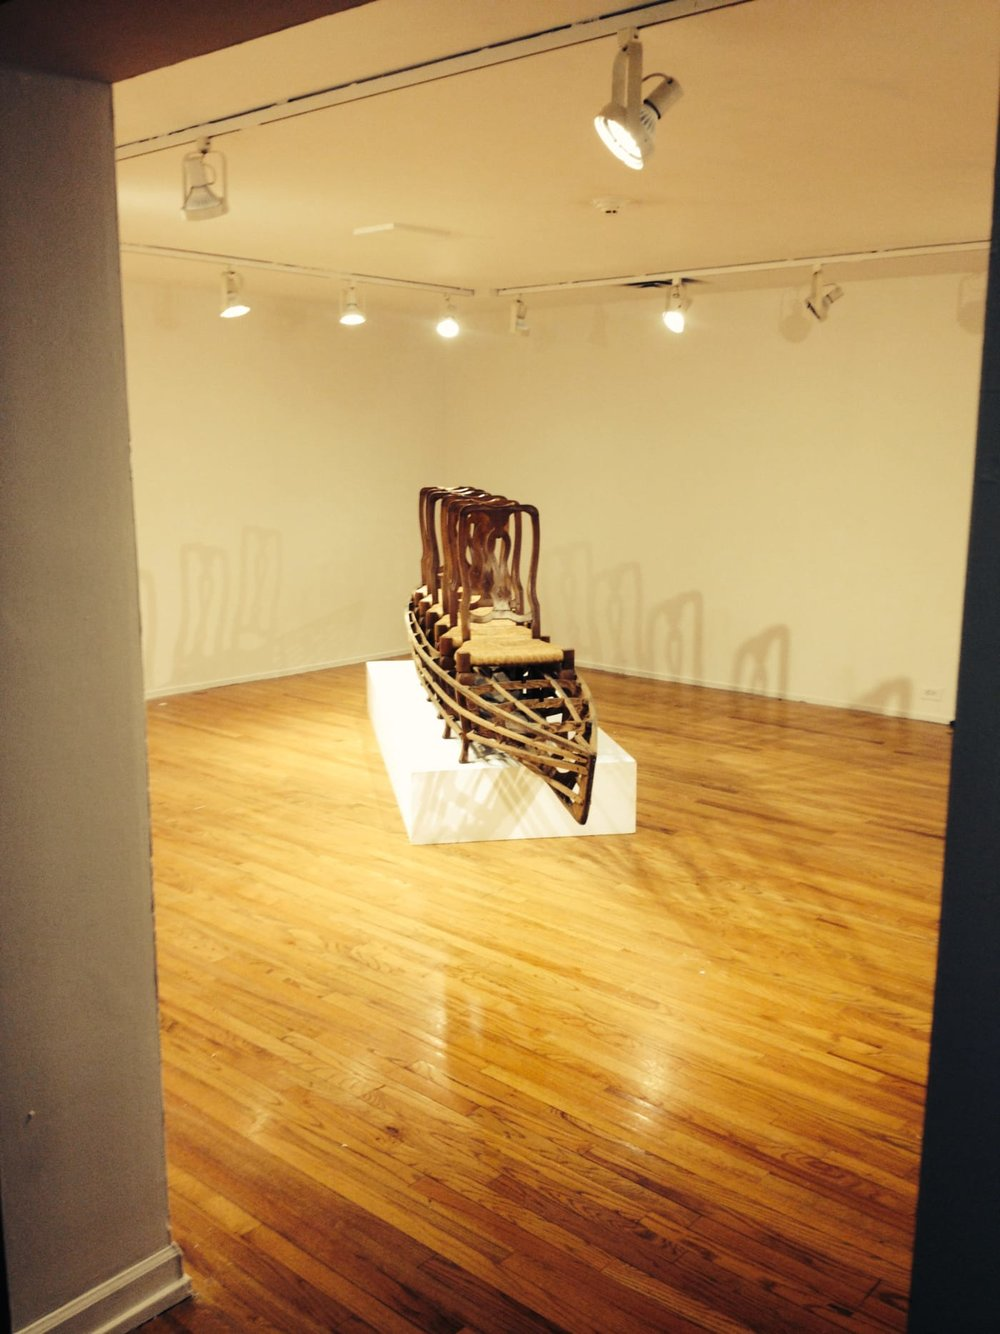 Installed at Pittsburgh Center for the Arts, 2014